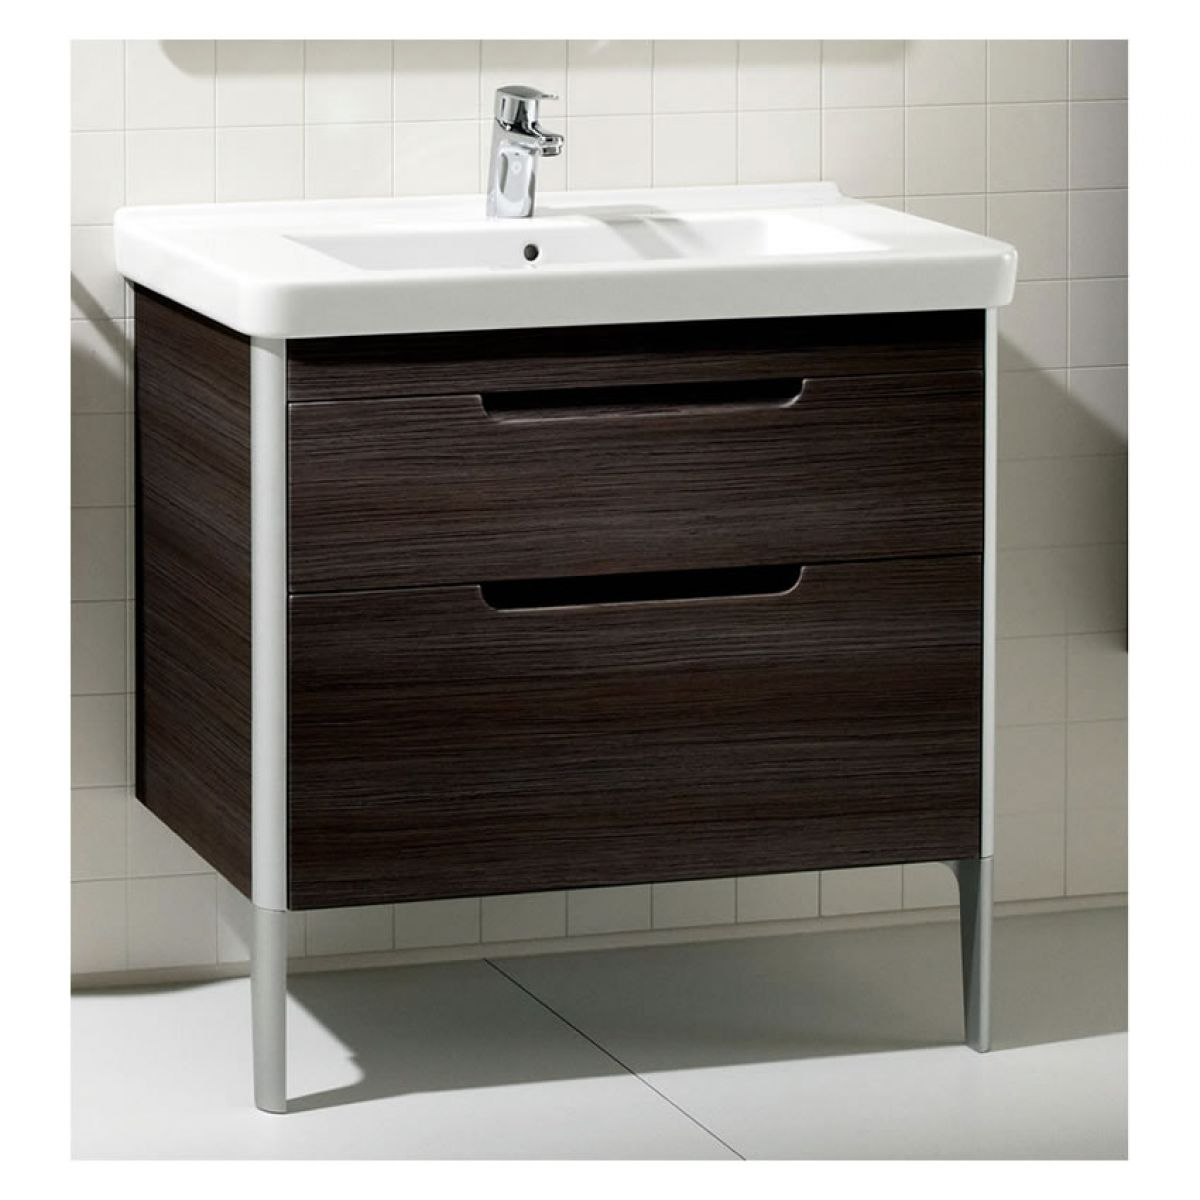 Roca Bathroom Accessories Roca Dama N 2 Drawer Basin Unit Uk Bathrooms